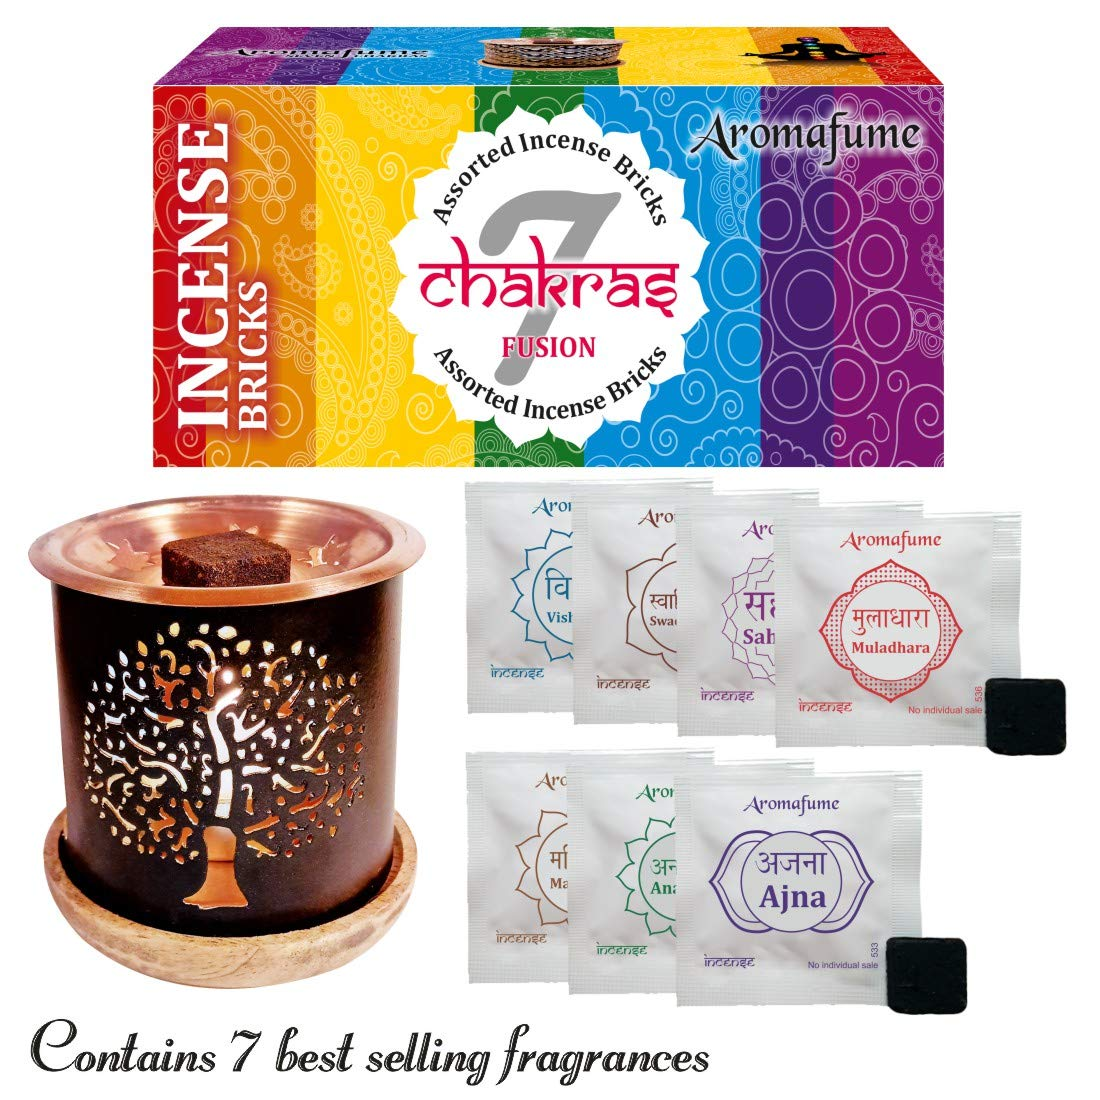 Aromafume 7 Chakra Incense Bricks Starter Kit containing Tree of Life Exotic Incense Diffuser (Gift Set). Ideal for Meditation, Purification, Yoga, Chakra Alignment, Relaxation, Healing & Rituals by Aromafume (Image #2)